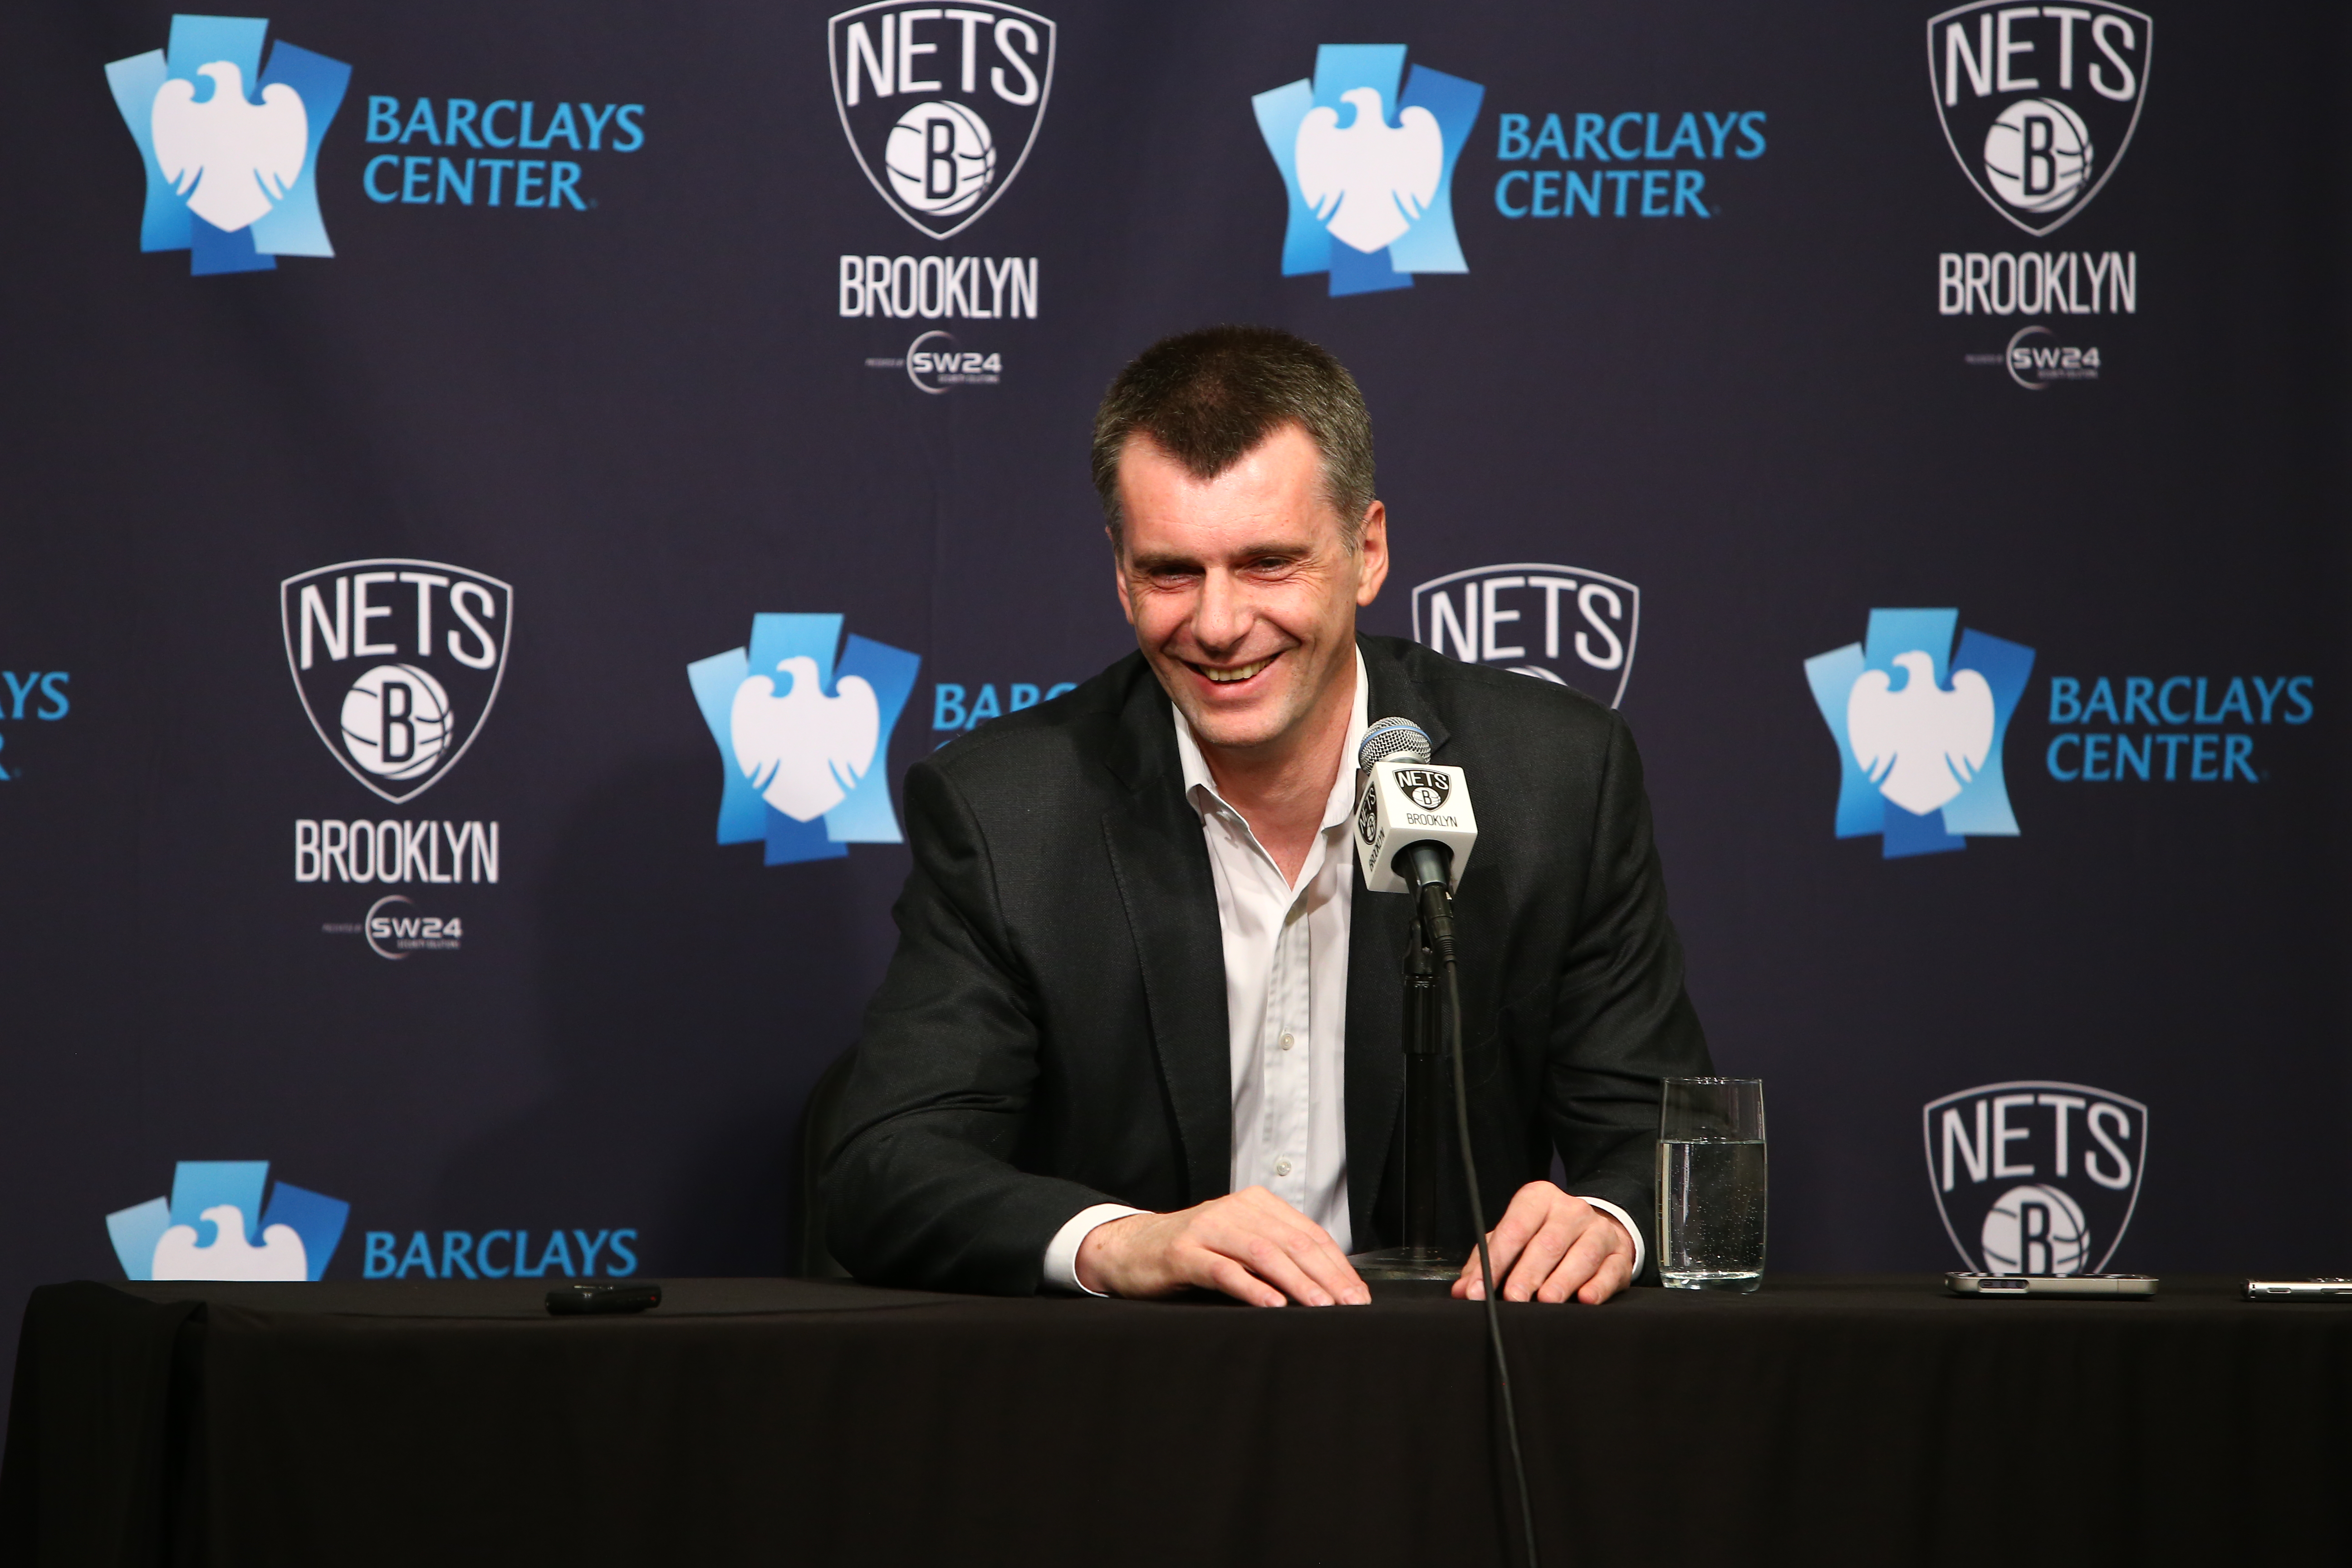 Mikhail Prokhorov was a total failure running the Nets, except in the way that counts